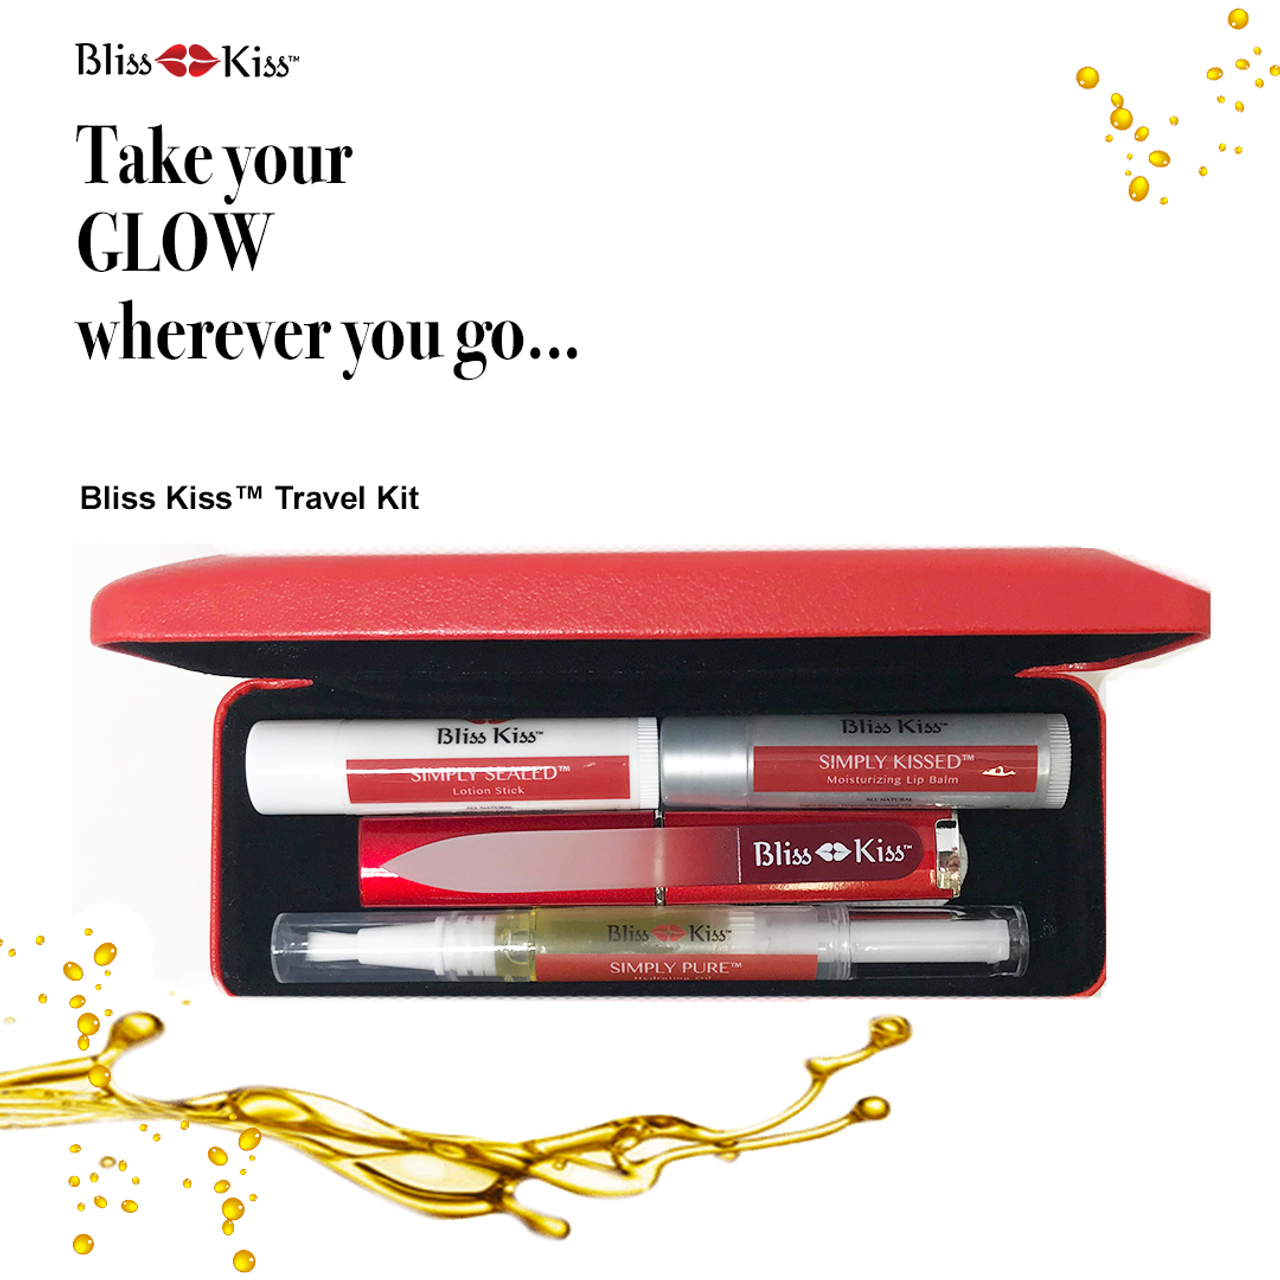 The Bliss Kiss™ Travel Kit